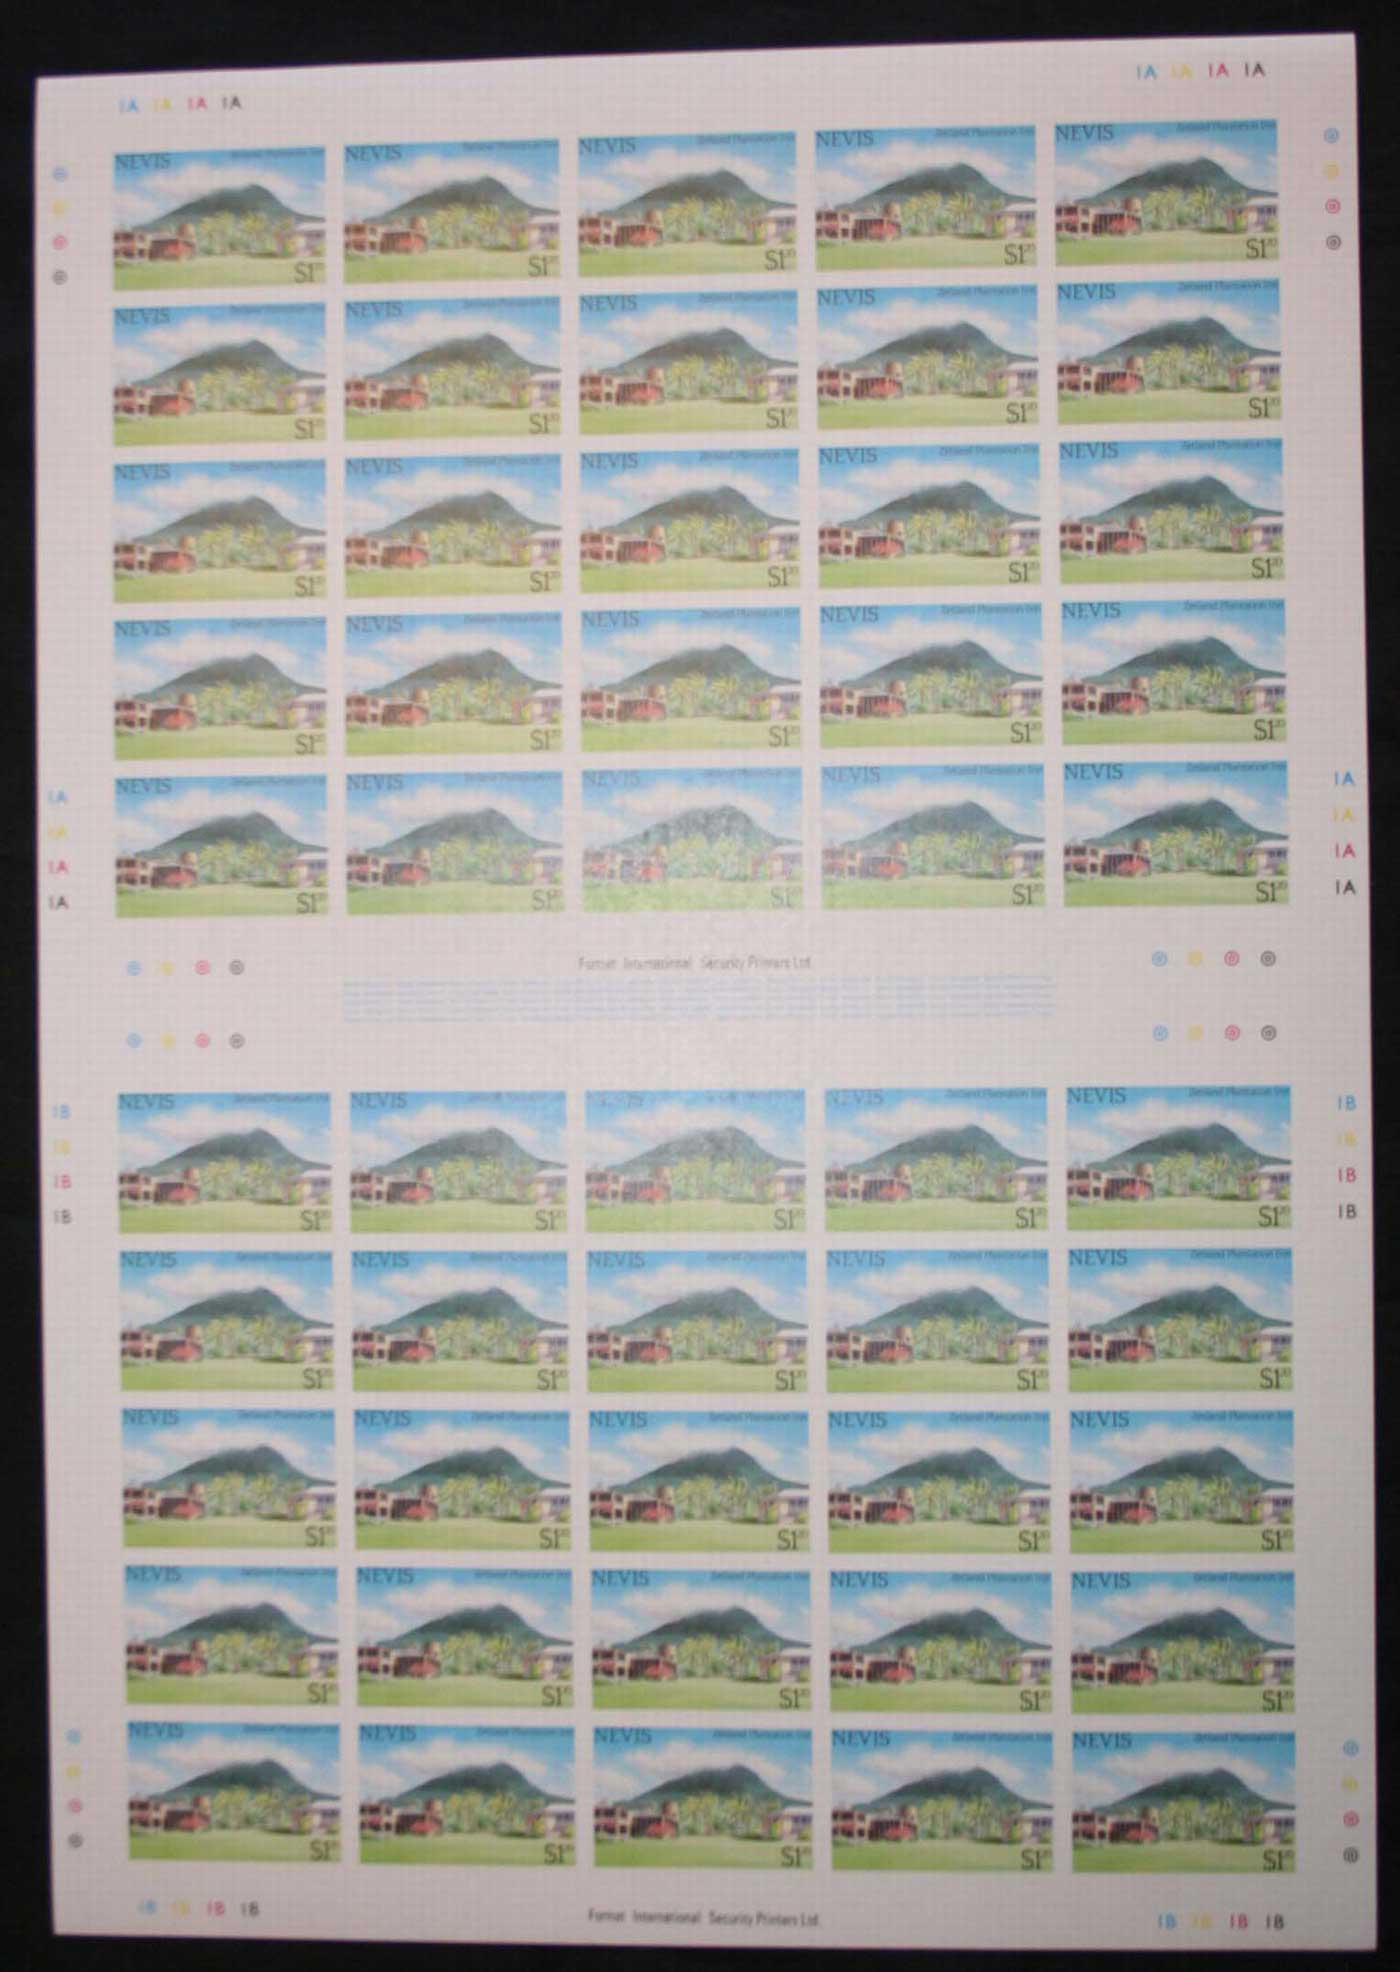 Nevis 1985 Tourism IMPERFORATE sheets, $1.20 x4, ex Format International Liquidation sale, late 1980s. MUH Lot30467